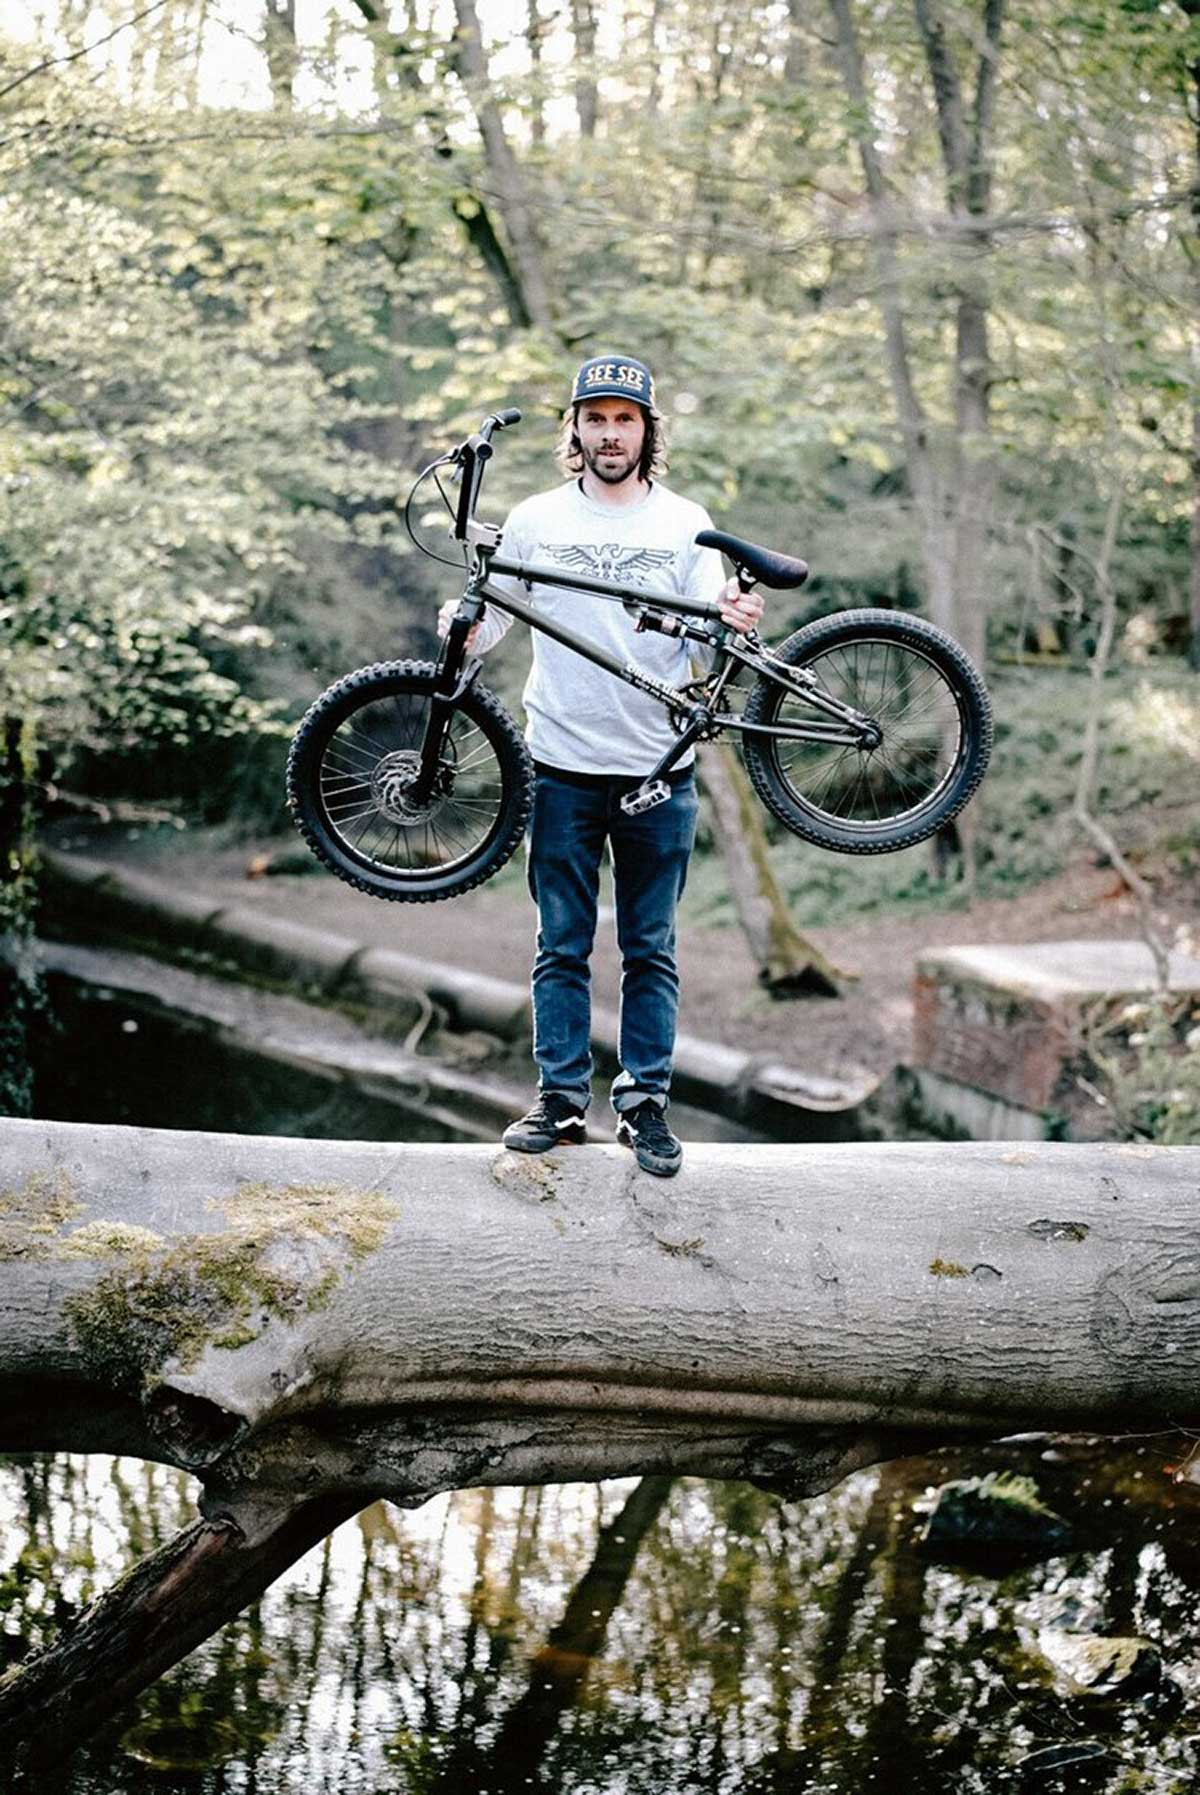 deathpack bmx will convert your bmx to full suspension bike for £400